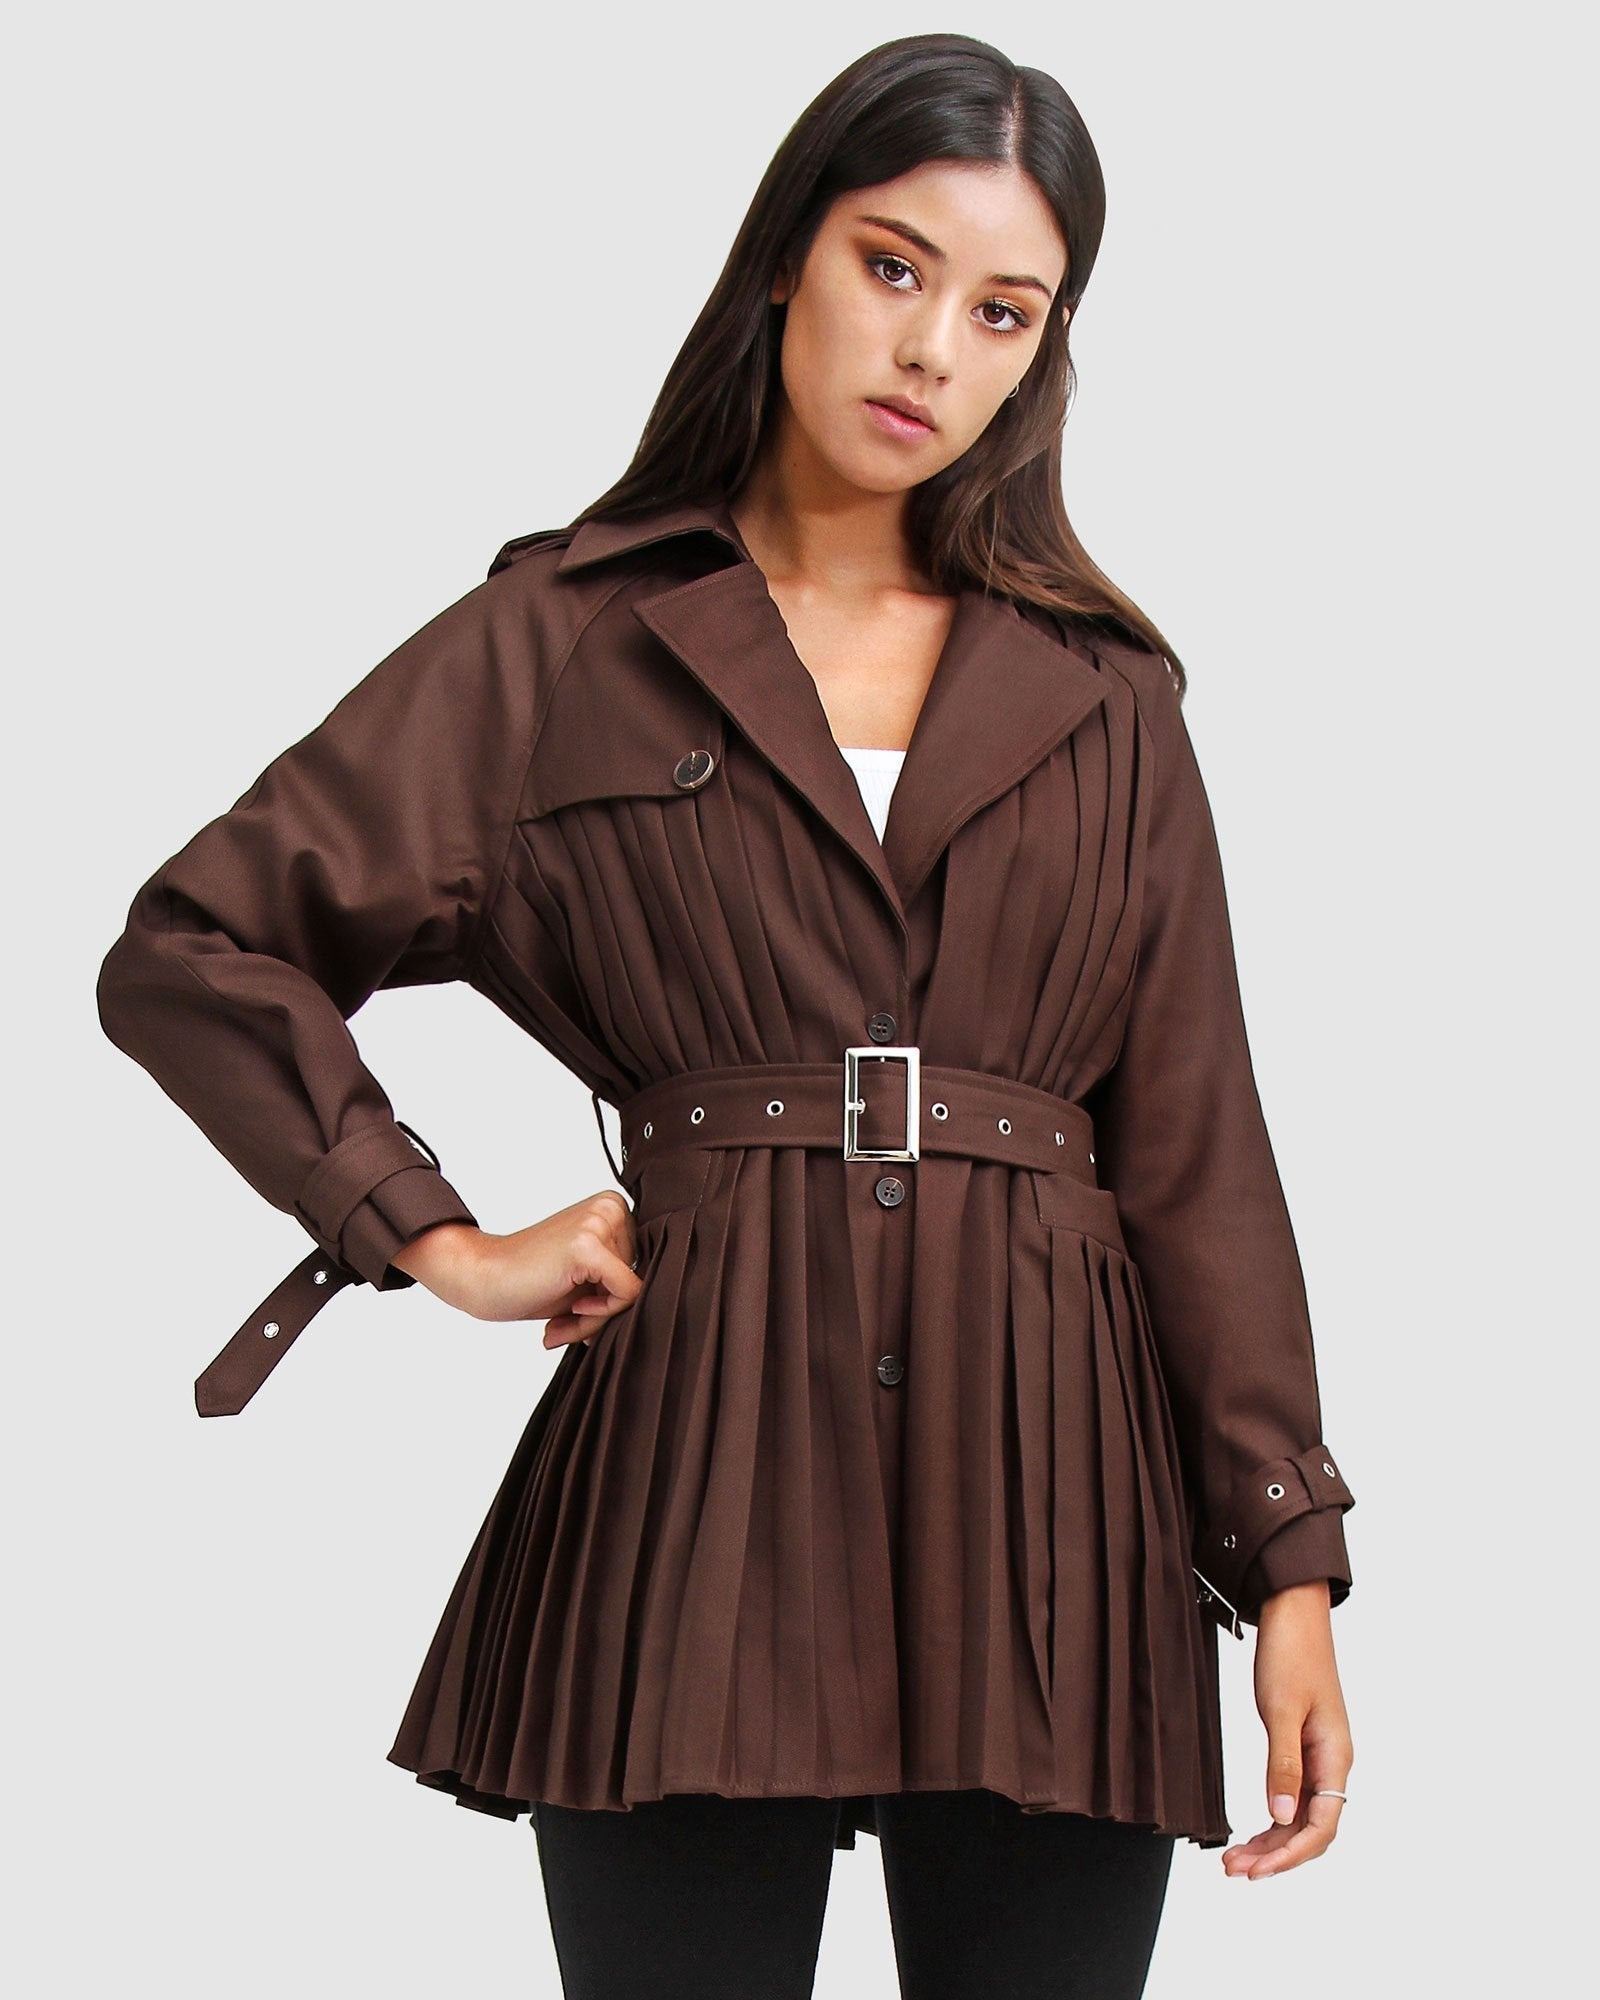 Wish You Were Mine Belted Jacket  - Coffee